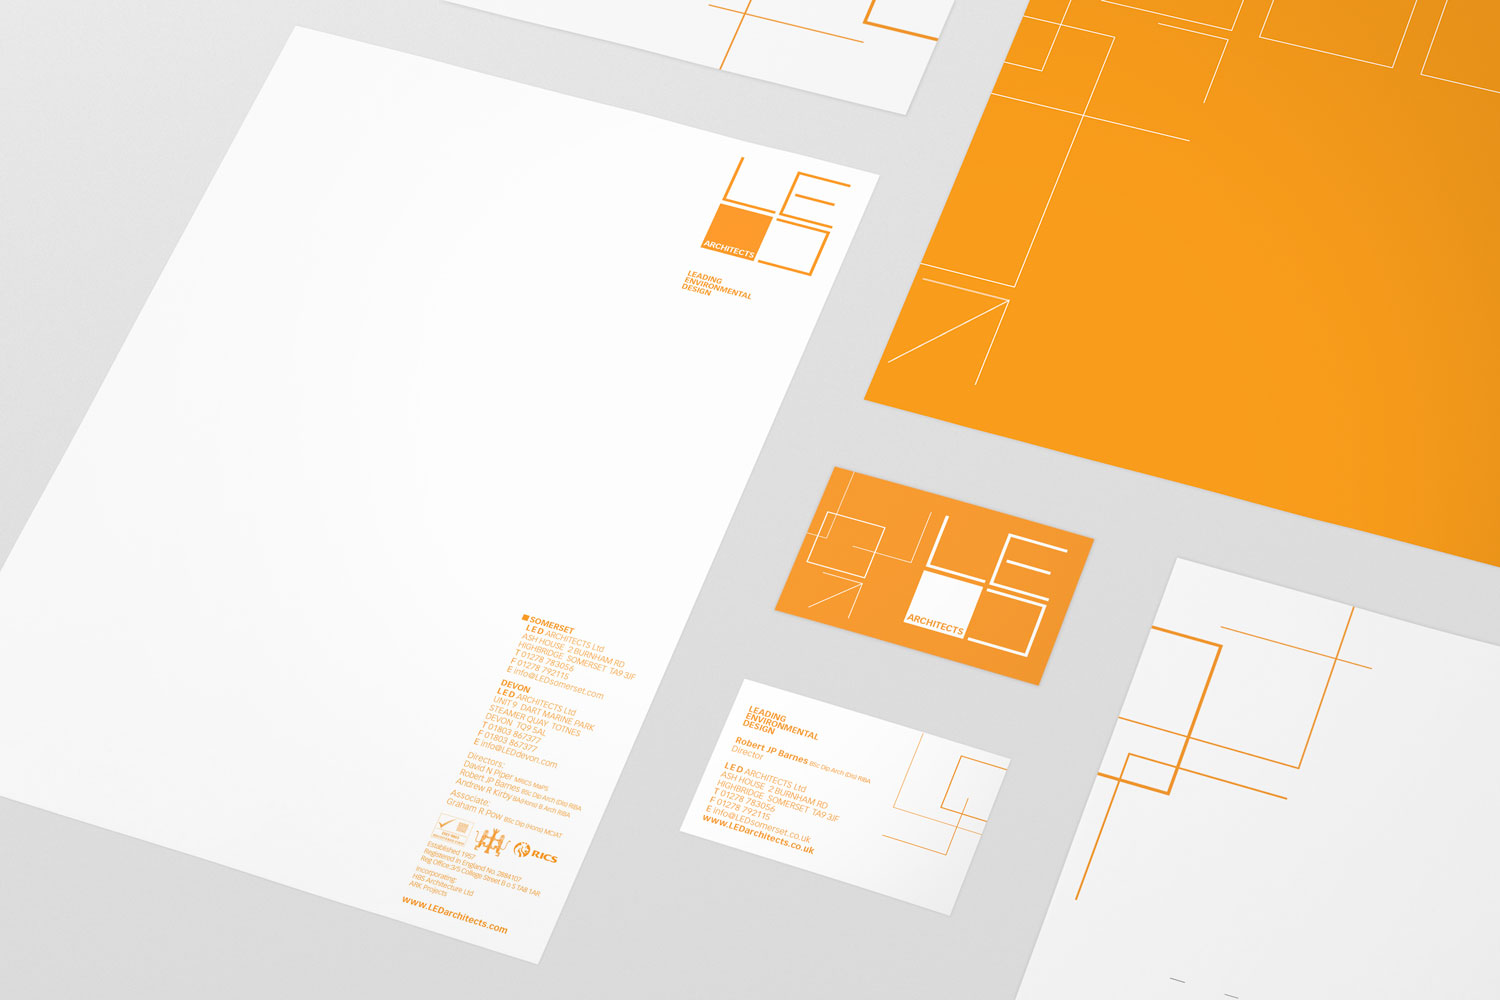 logo and brand identity for local architectural firm LED